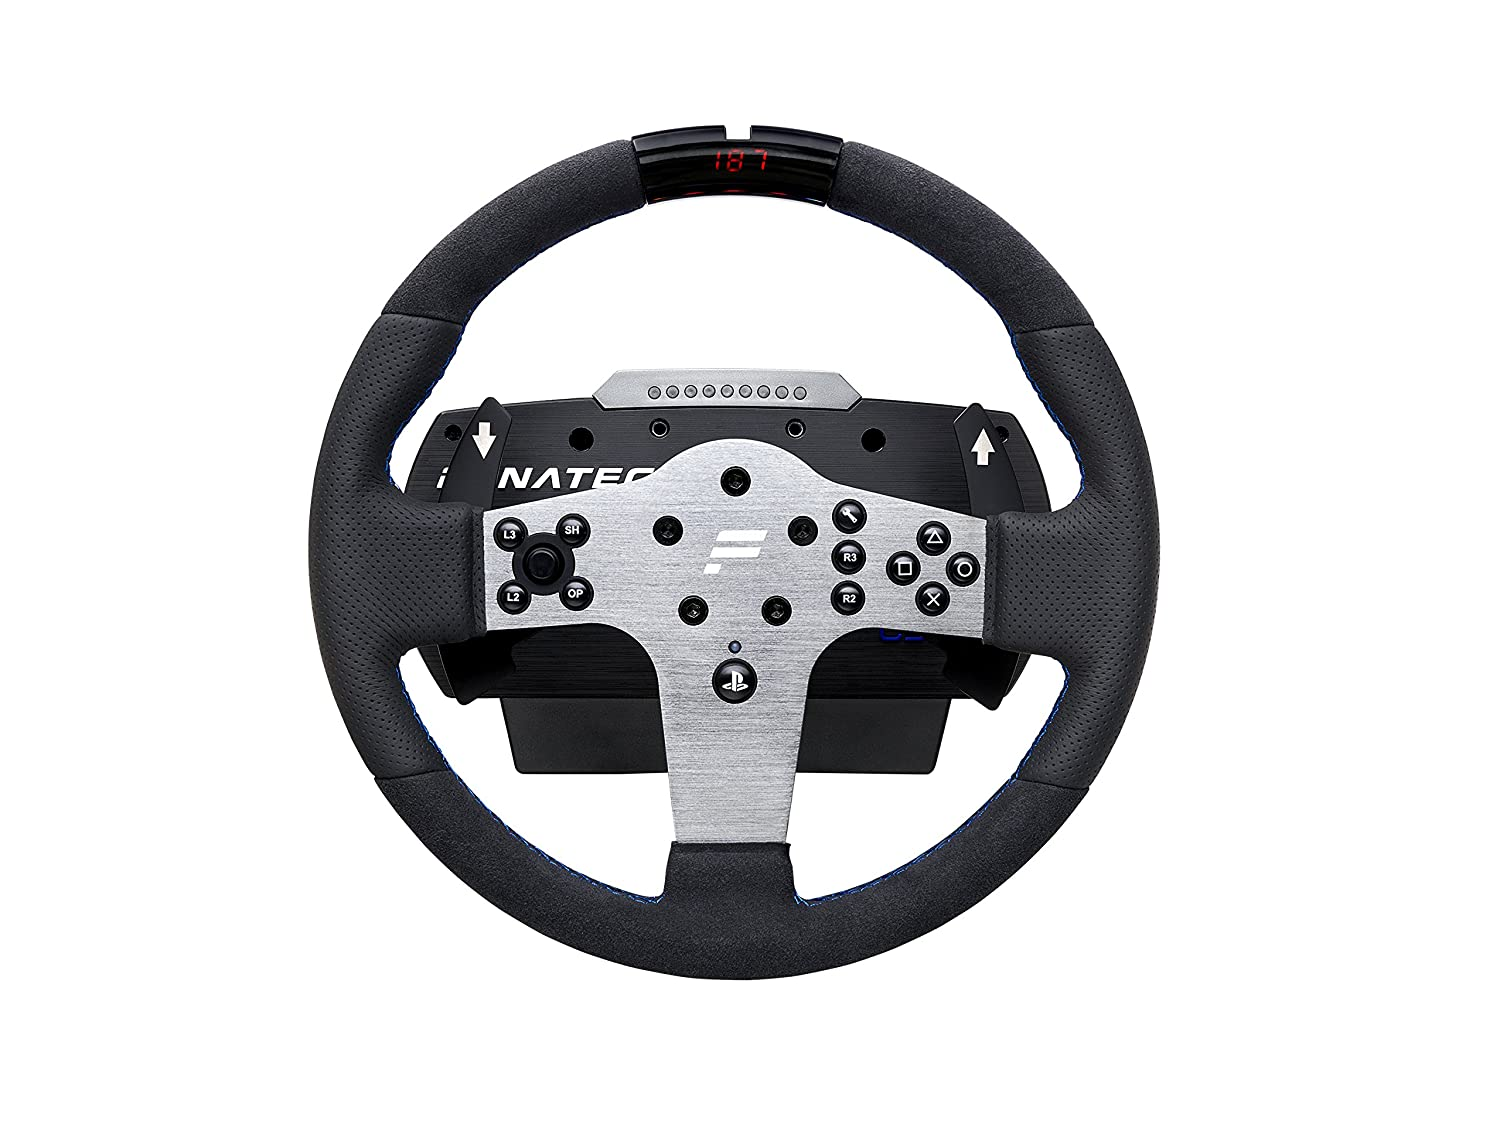 Fanatec CSL Elite Racing Wheel - officially licensed for